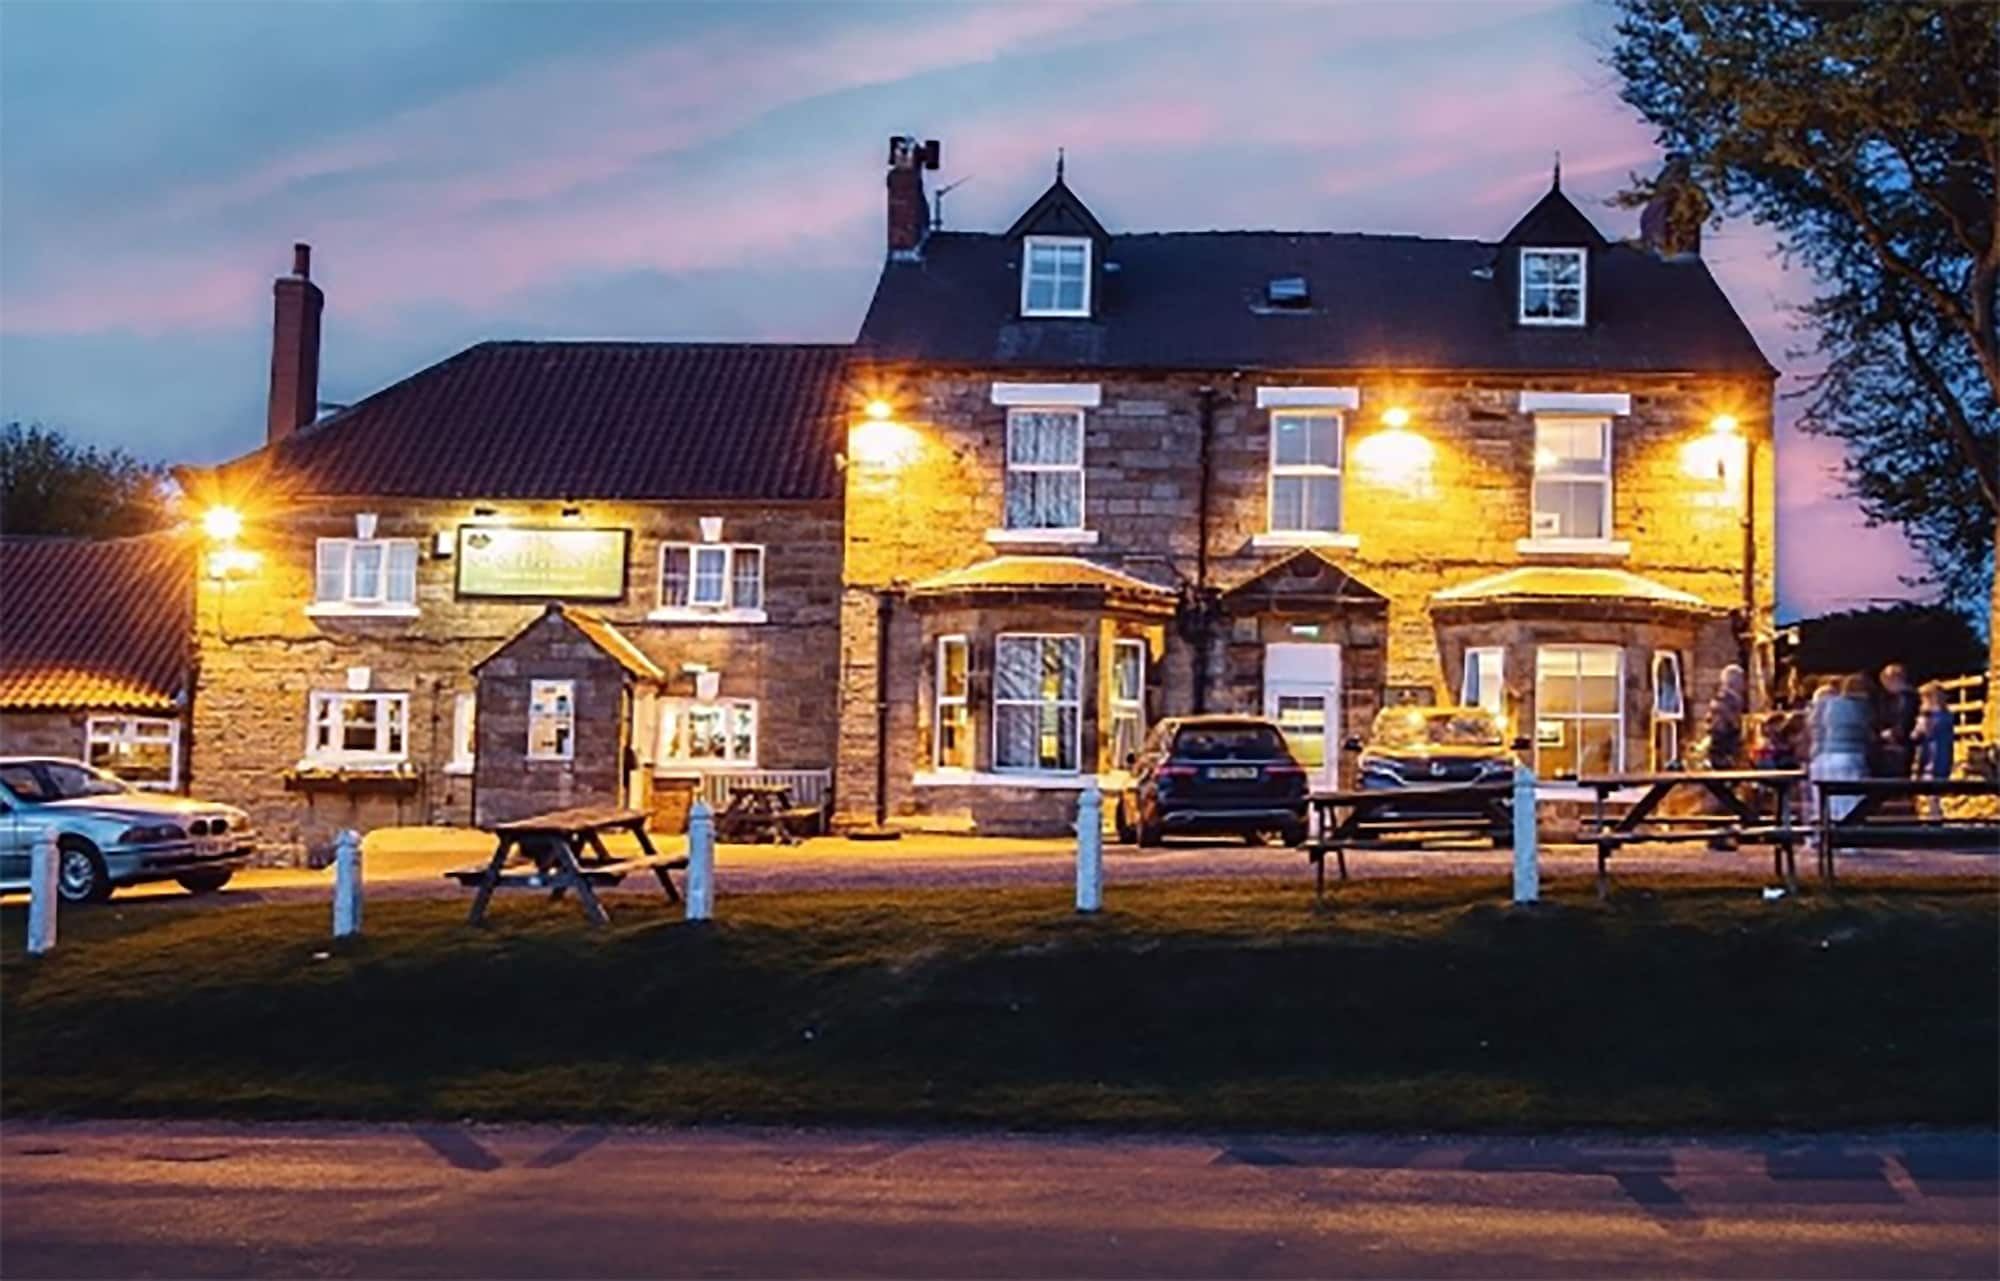 The Fox and Hounds, North Yorkshire